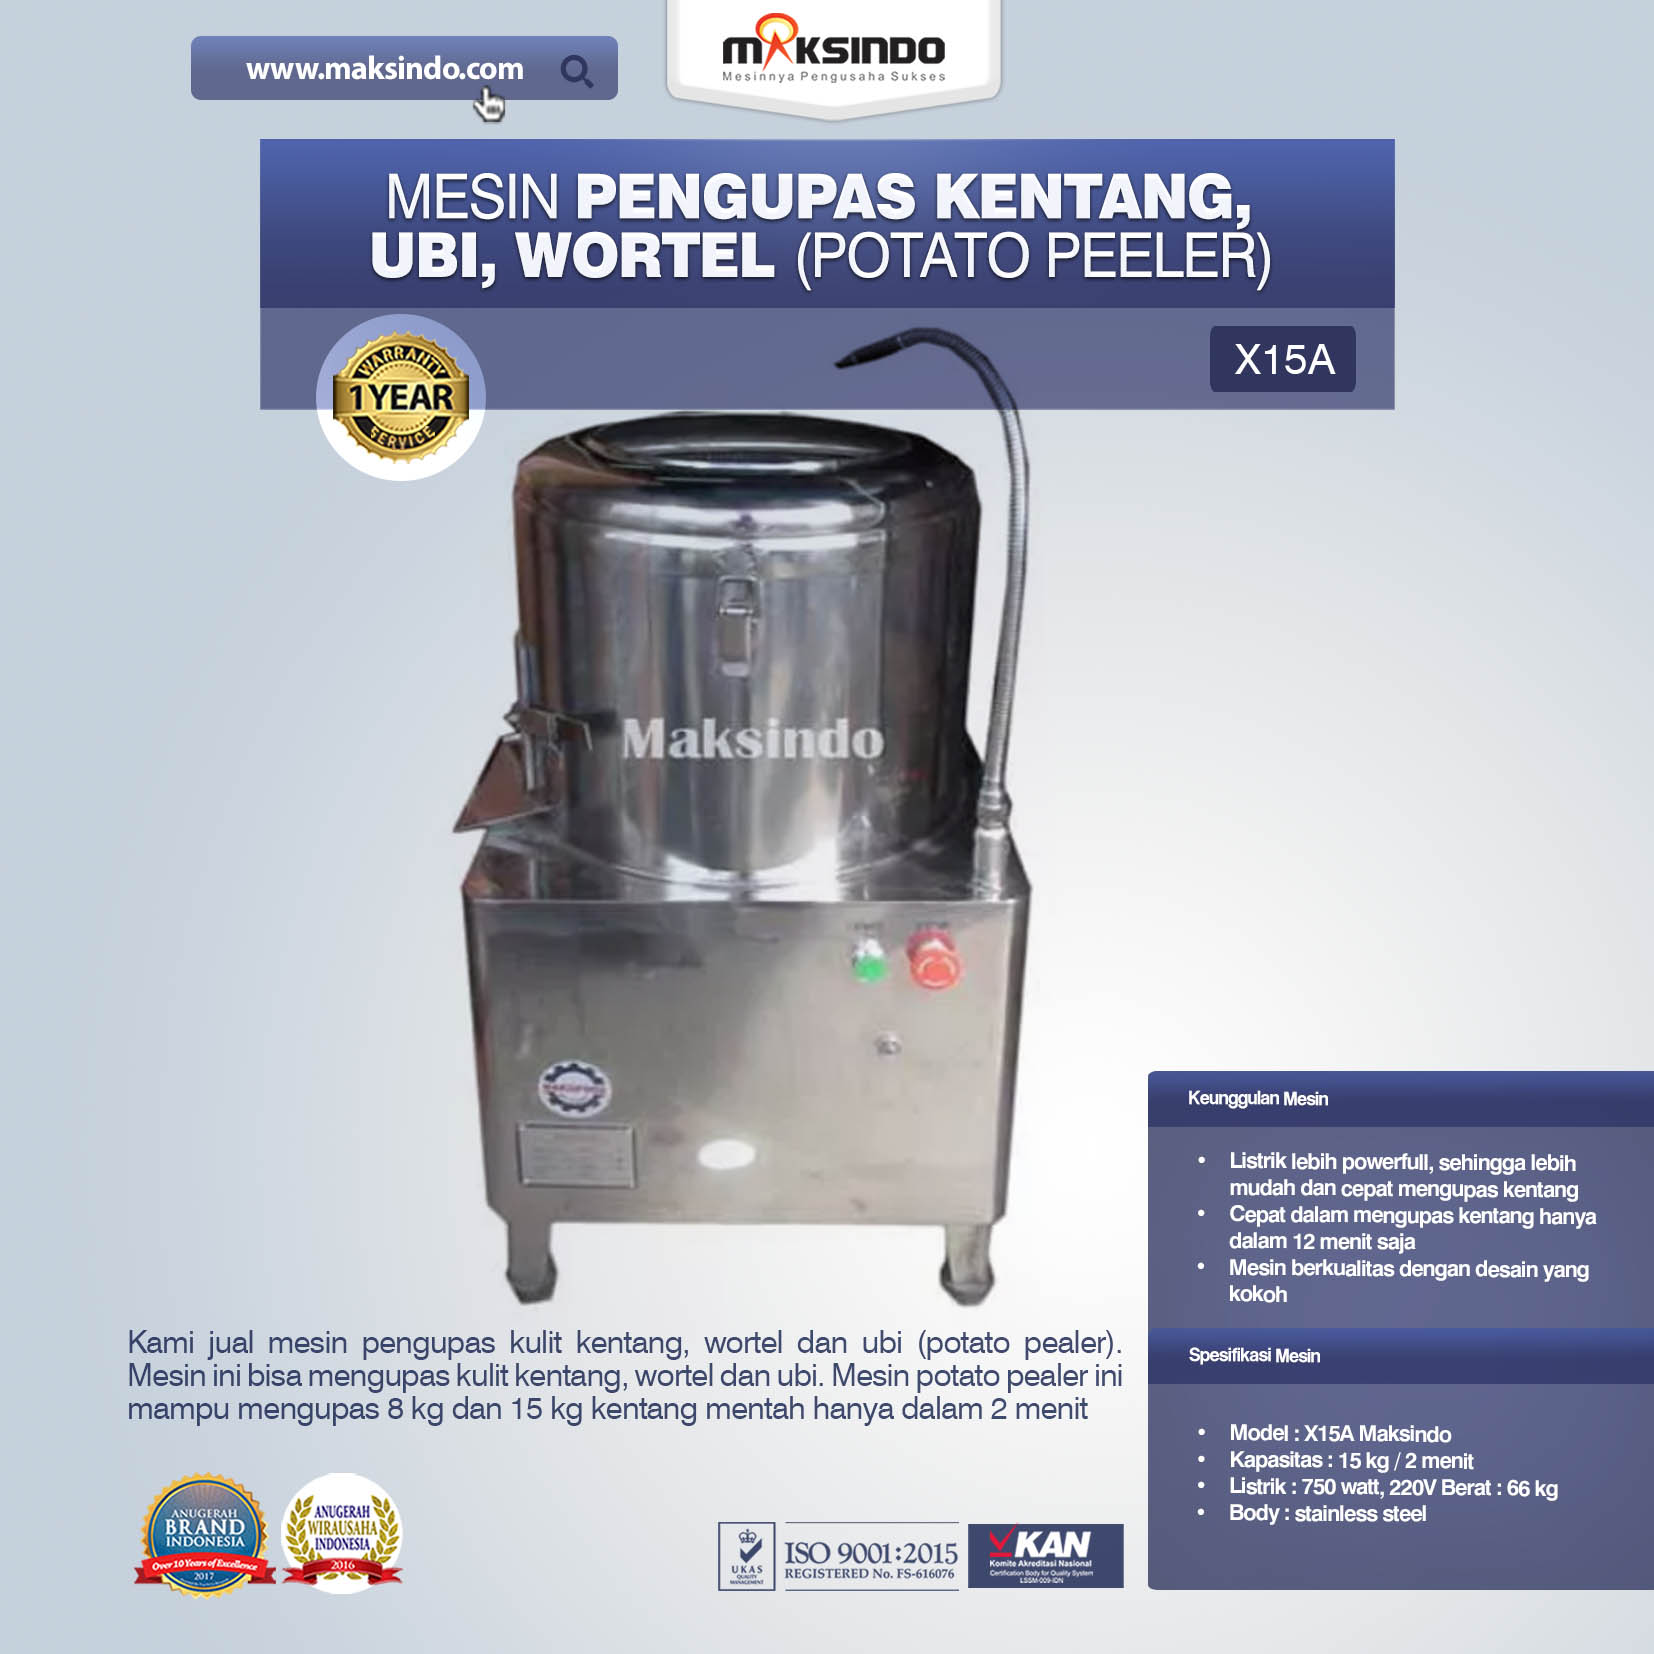 Mesin Pengupas Kentang, Ubi, Wortel (Potato Peeler) X15A